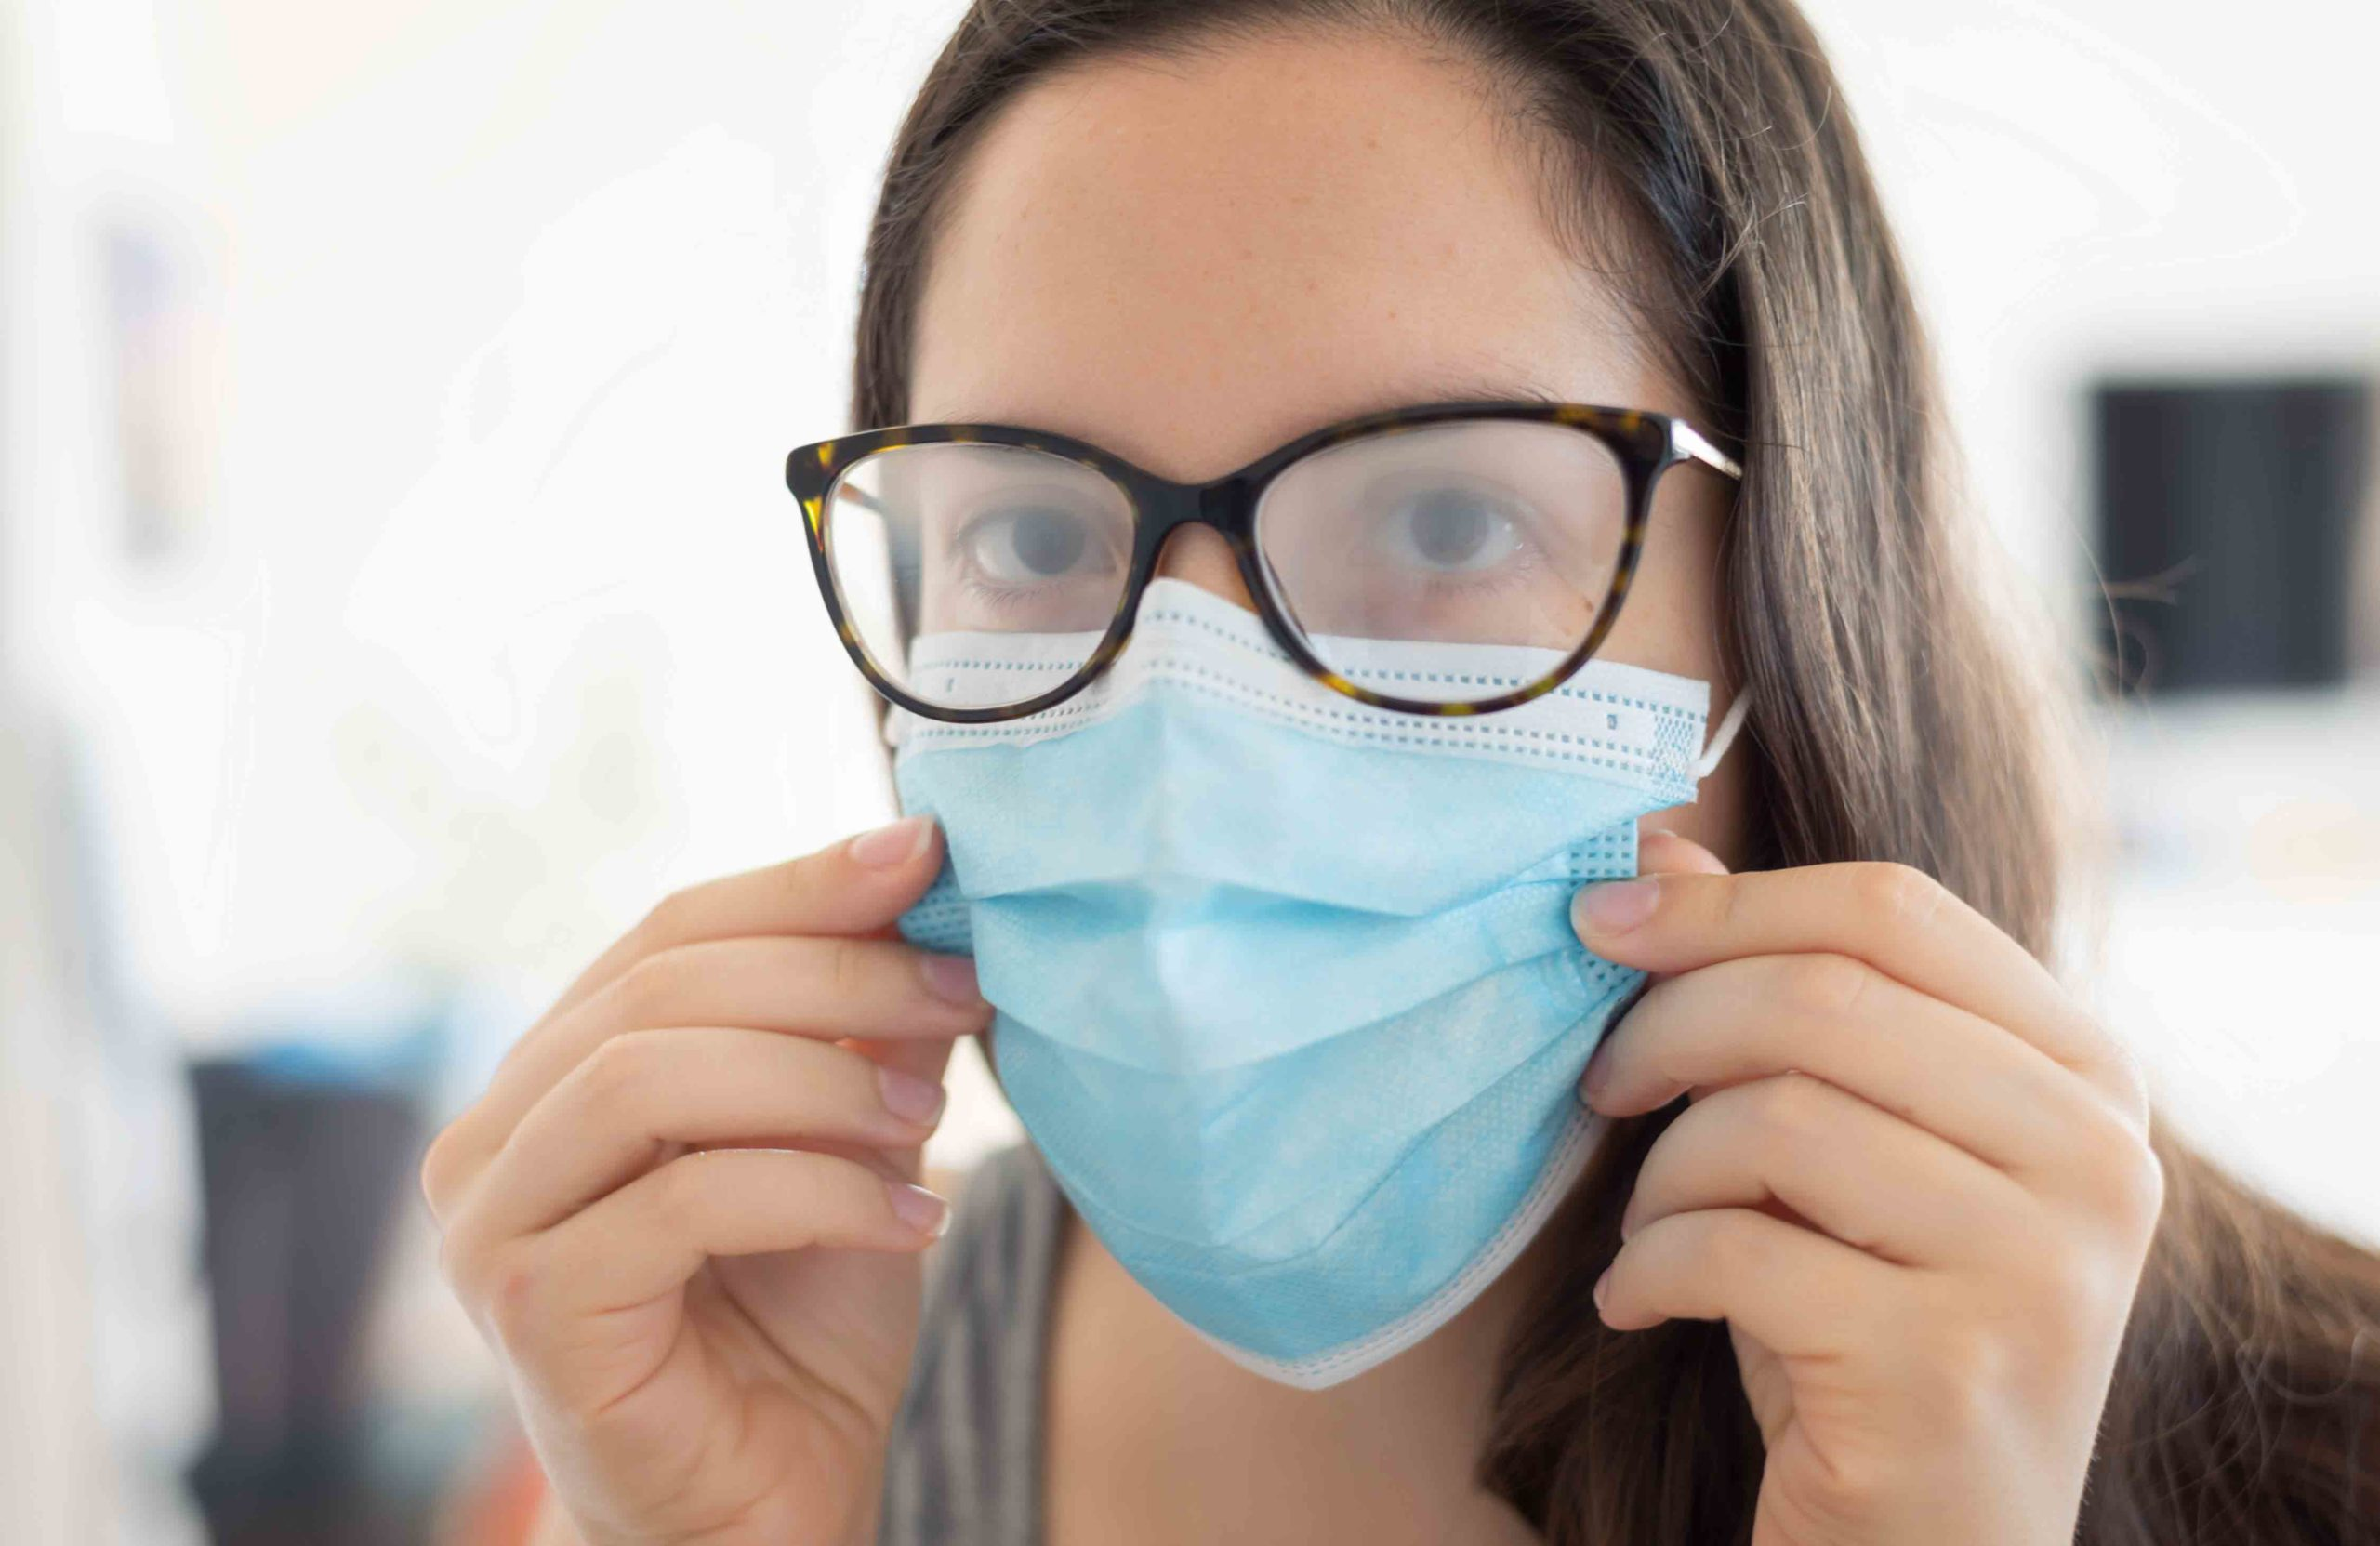 Glasses fogging up? Here's what to do about it